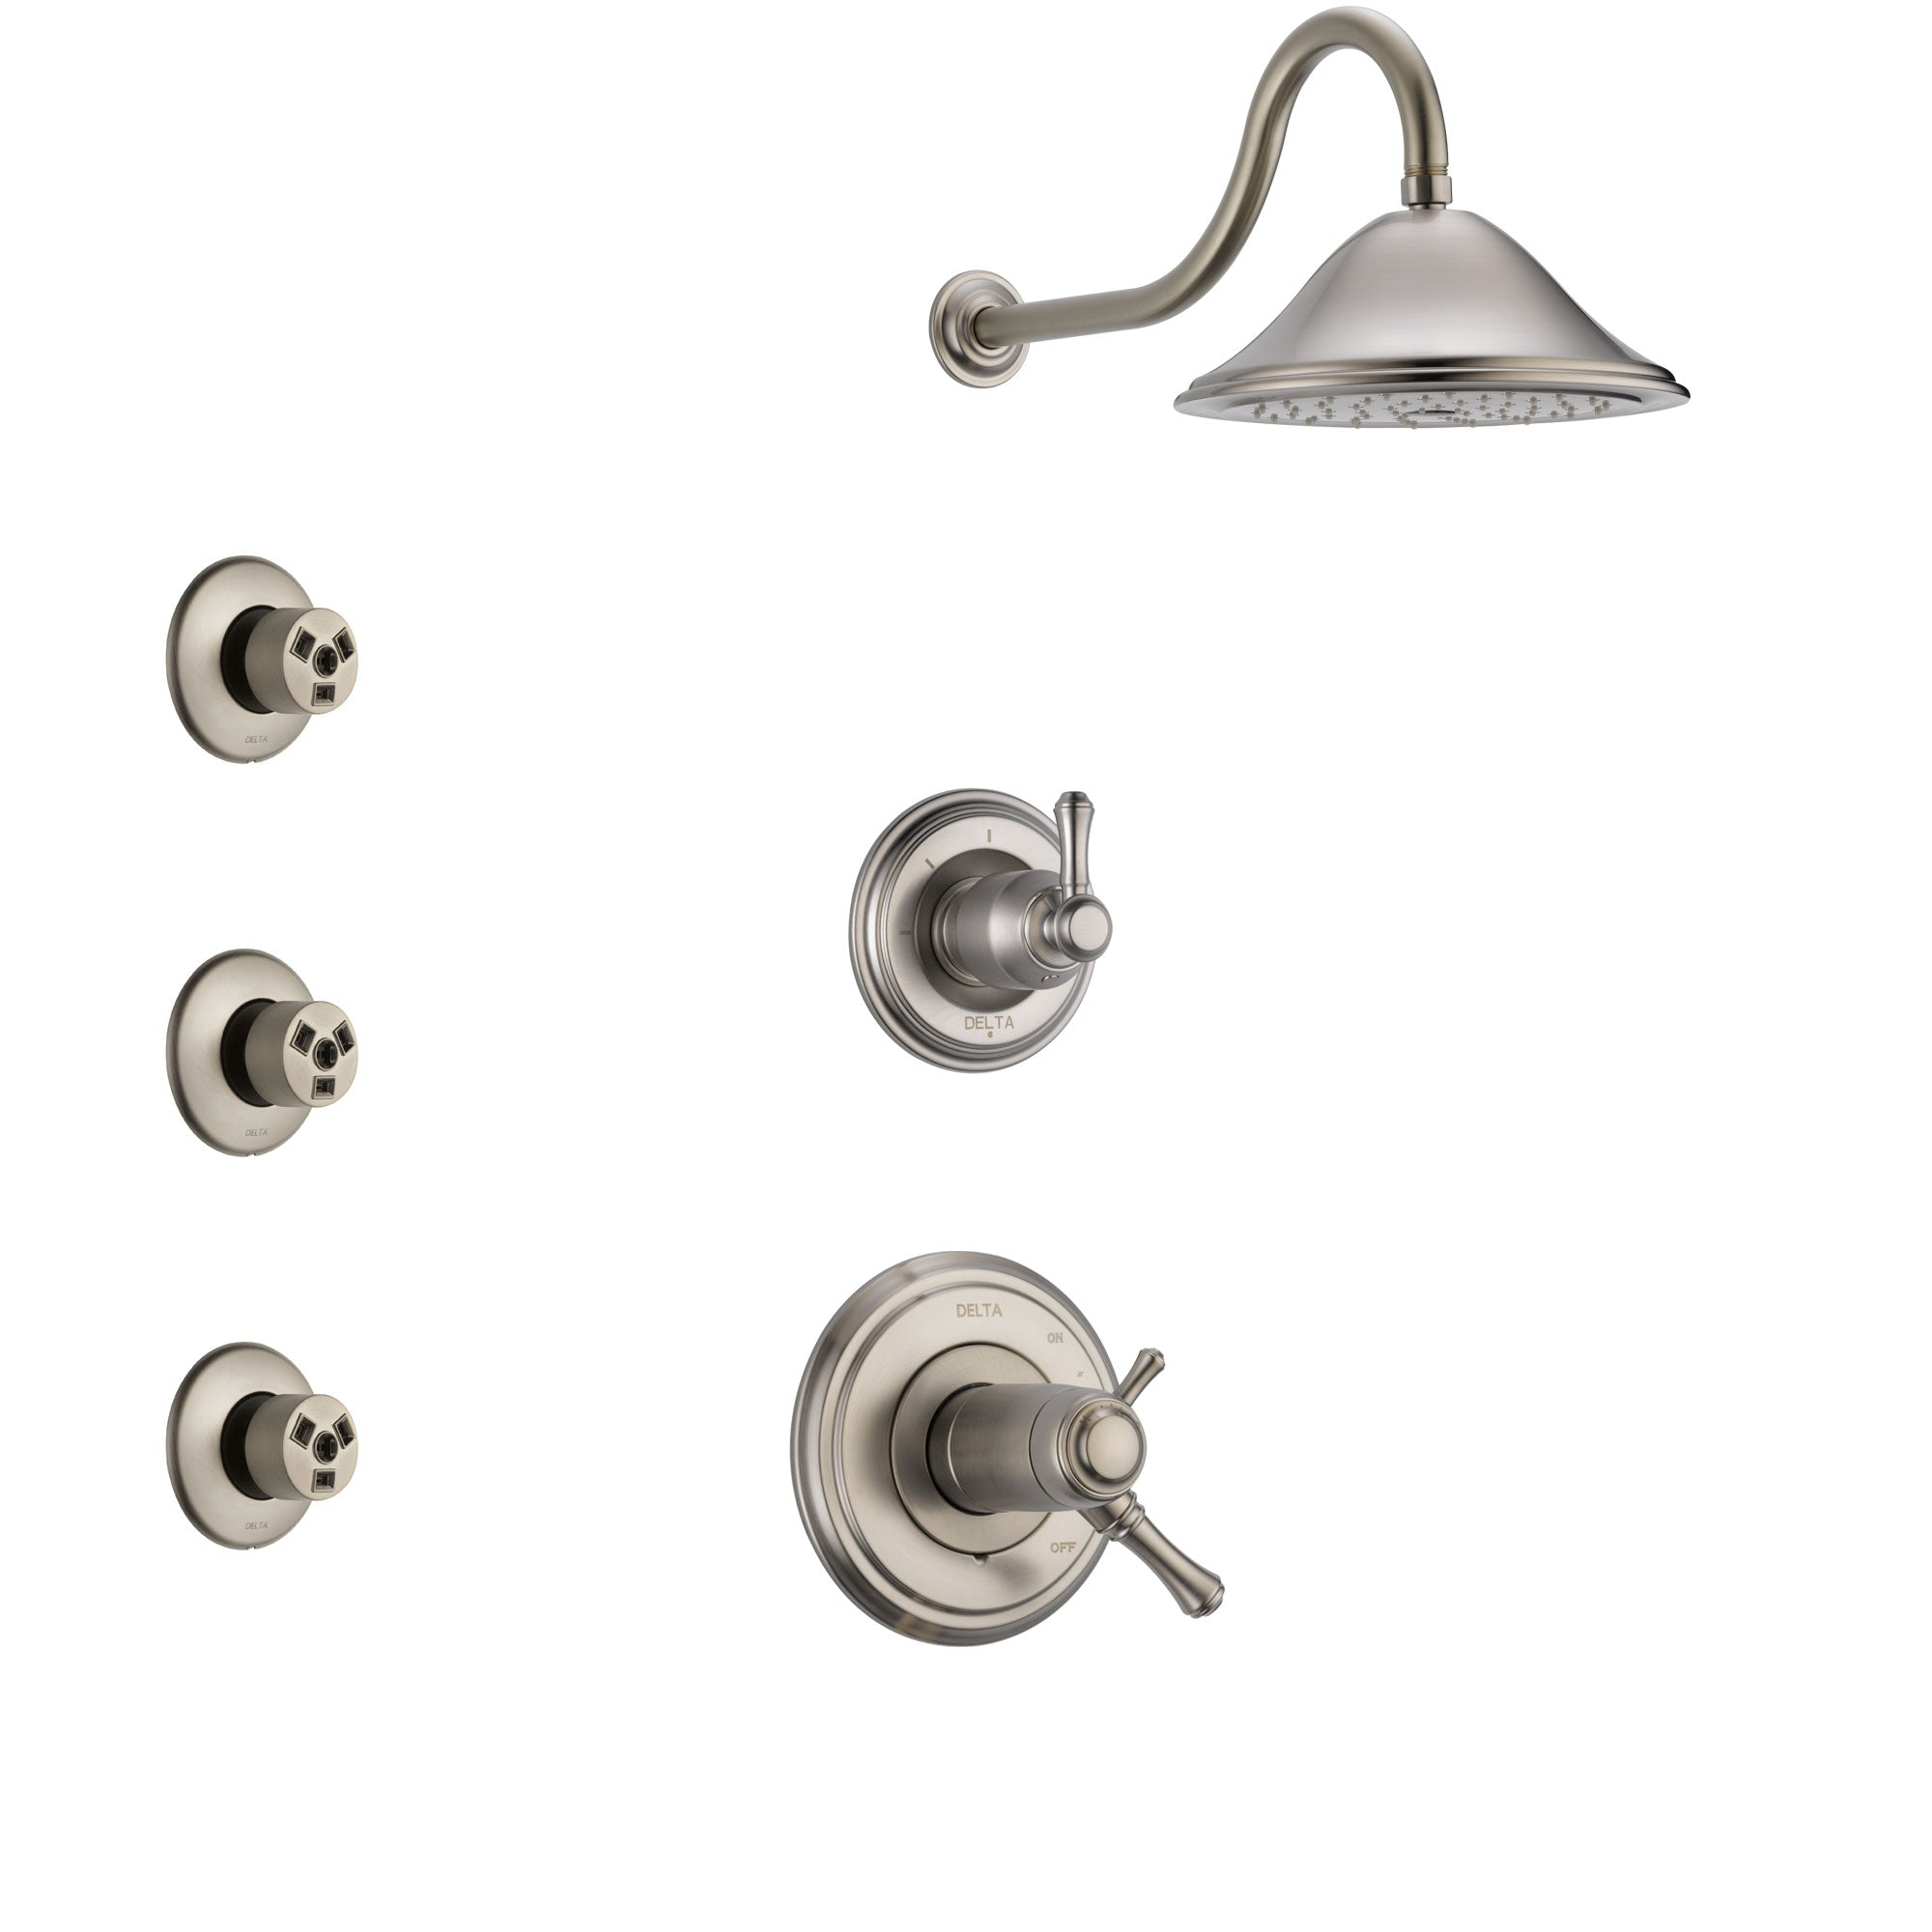 Delta Cassidy Dual Thermostatic Control Handle Stainless Steel Finish Shower System, 3-Setting Diverter, Showerhead, and 3 Body Sprays SS17T2972SS1